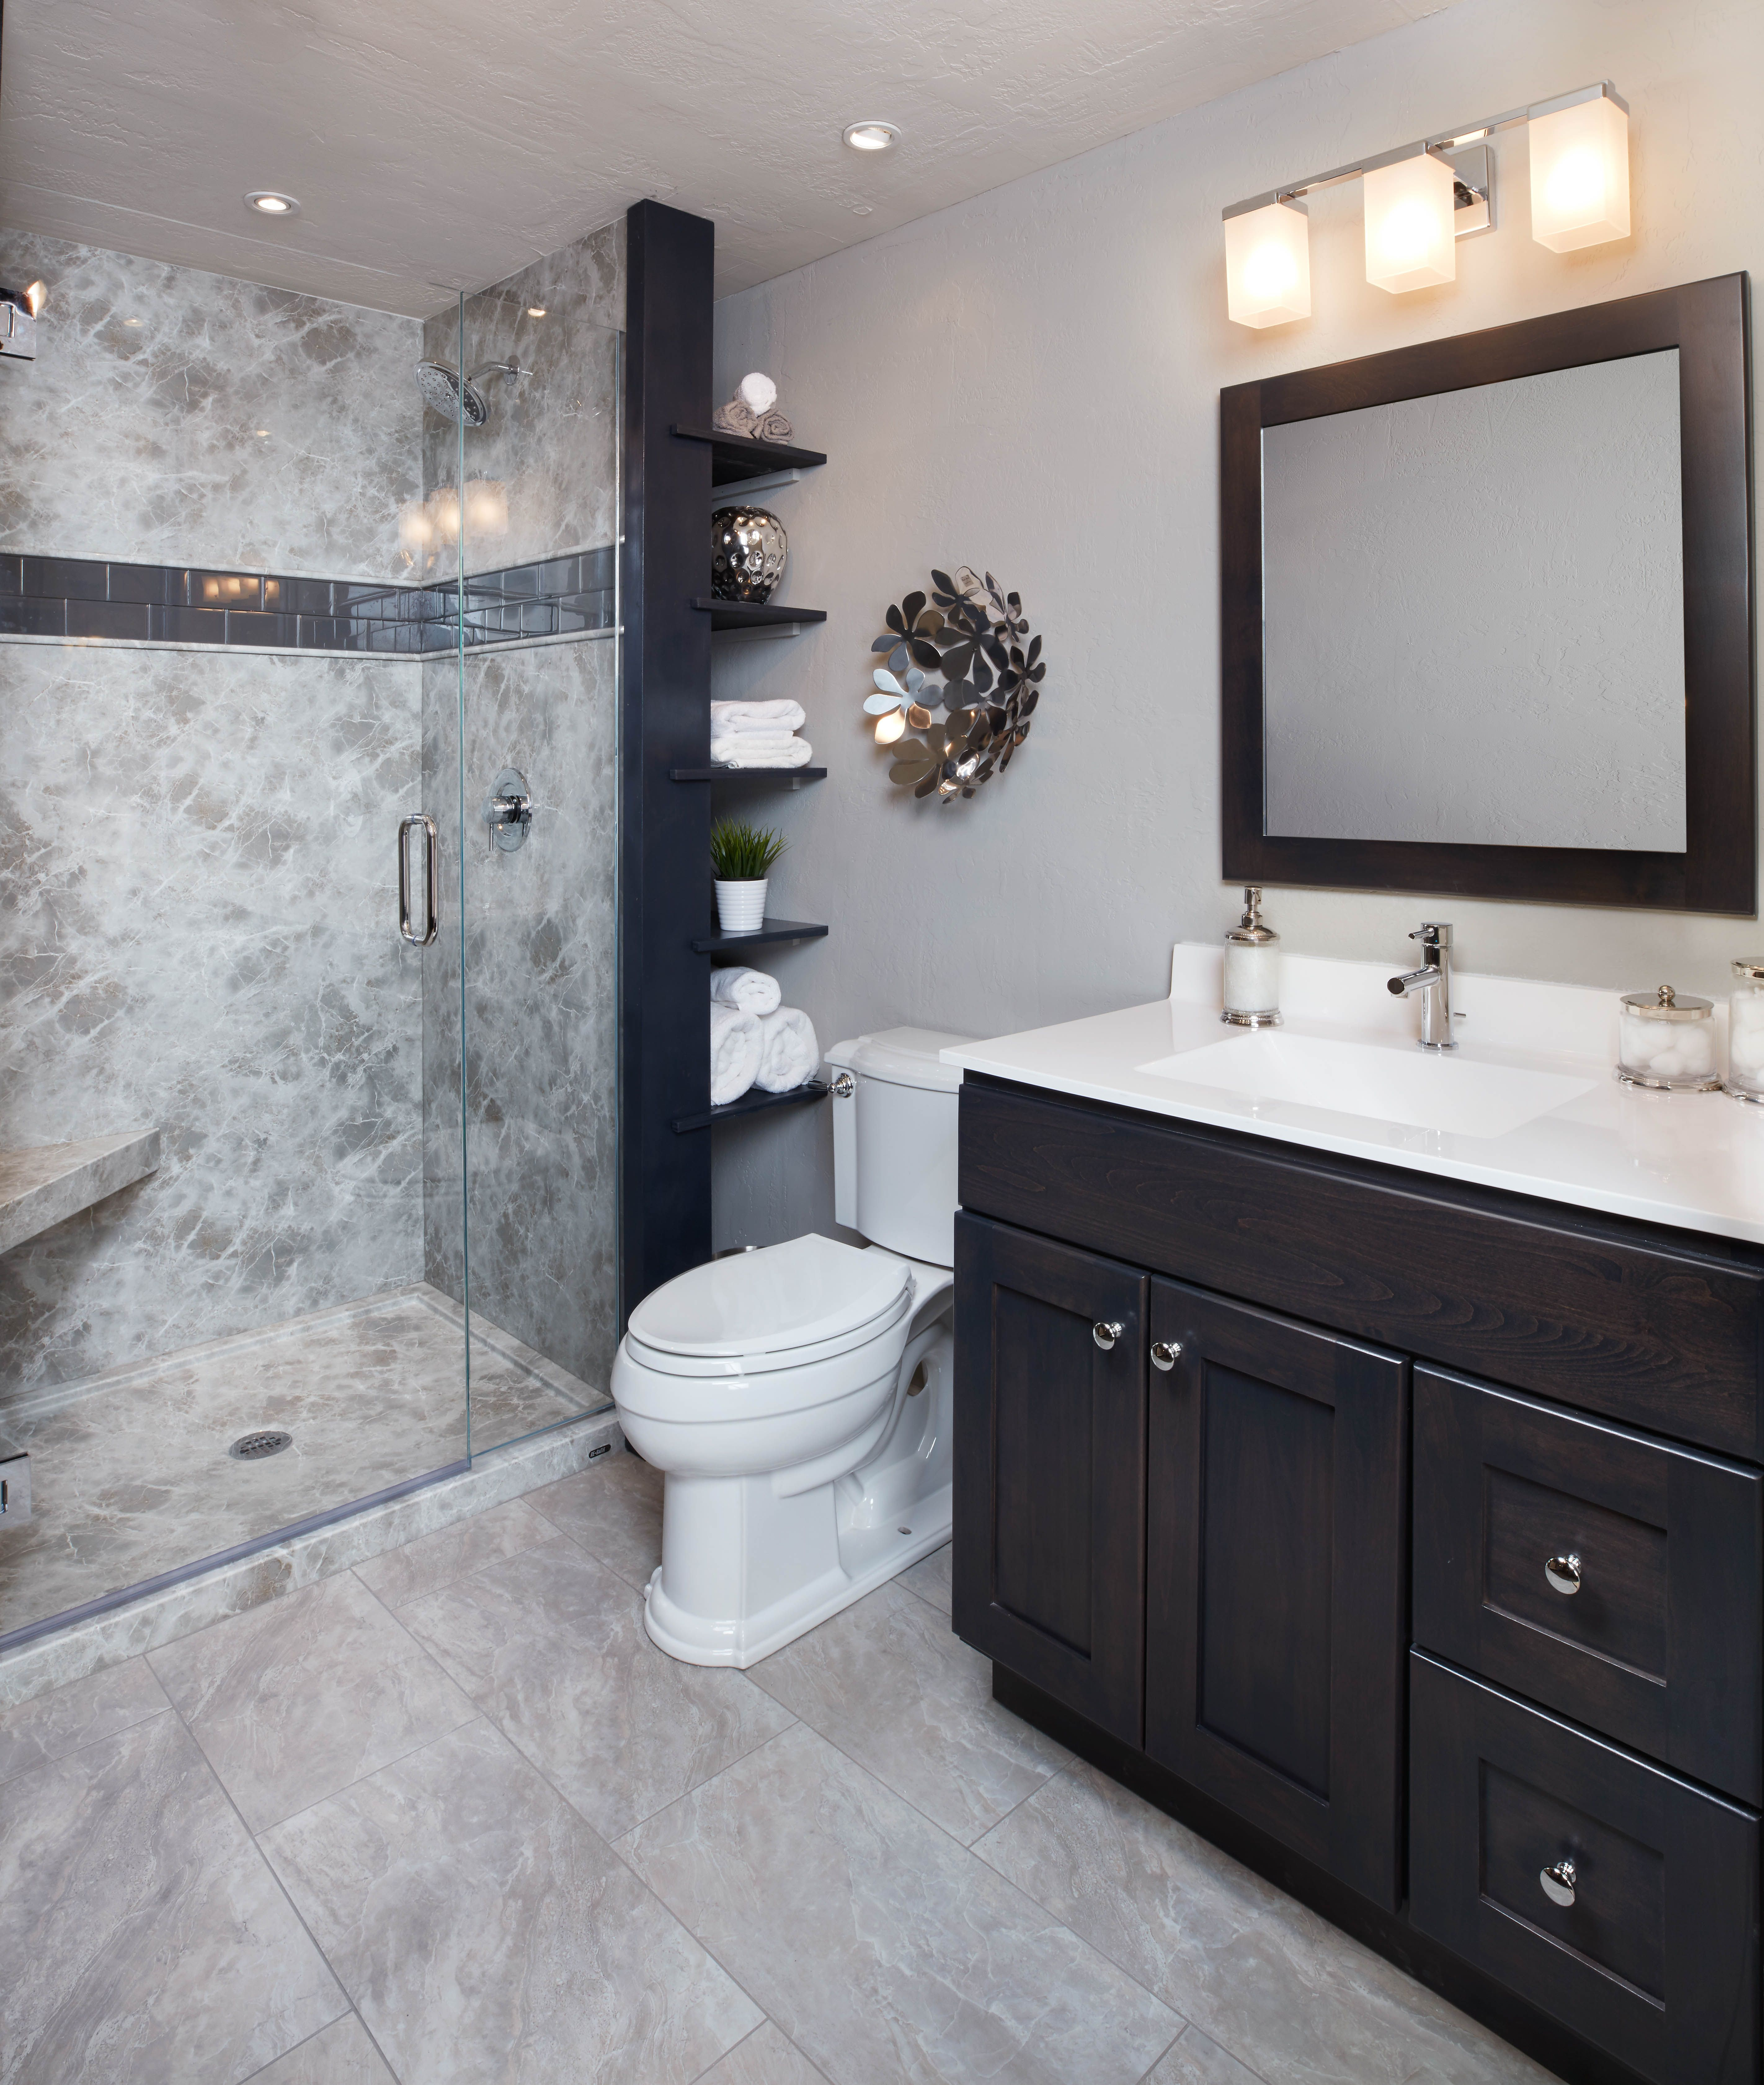 Re-Bath® Vignettes In 2019